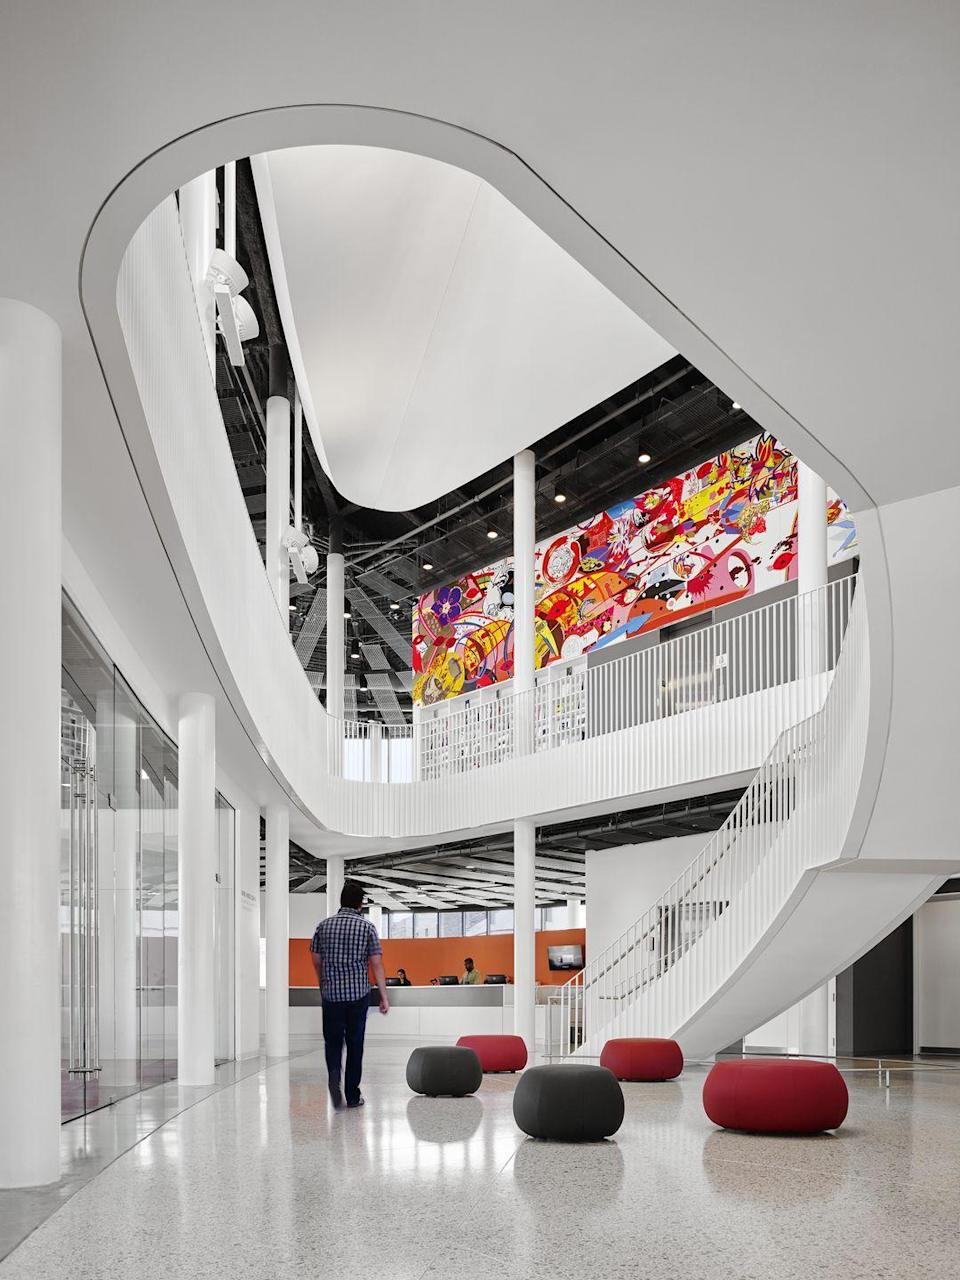 """<p>Chicago Public Library's Chinatown branch is an <a href=""""http://www.chipublib.org/locations/20/"""" rel=""""nofollow noopener"""" target=""""_blank"""" data-ylk=""""slk:otherworldly structure"""" class=""""link rapid-noclick-resp"""">otherworldly structure</a> inspired by its neighborhood. Its design is based on Feng Shui principles, and its glass exterior is meant to evoke a glowing lantern at night. The building also won a <a href=""""http://www.aia.org/practicing/awards/AIAB083450"""" rel=""""nofollow noopener"""" target=""""_blank"""" data-ylk=""""slk:AIA/ALA Library Building Award"""" class=""""link rapid-noclick-resp"""">AIA/ALA Library Building Award</a> earlier this year. </p>"""